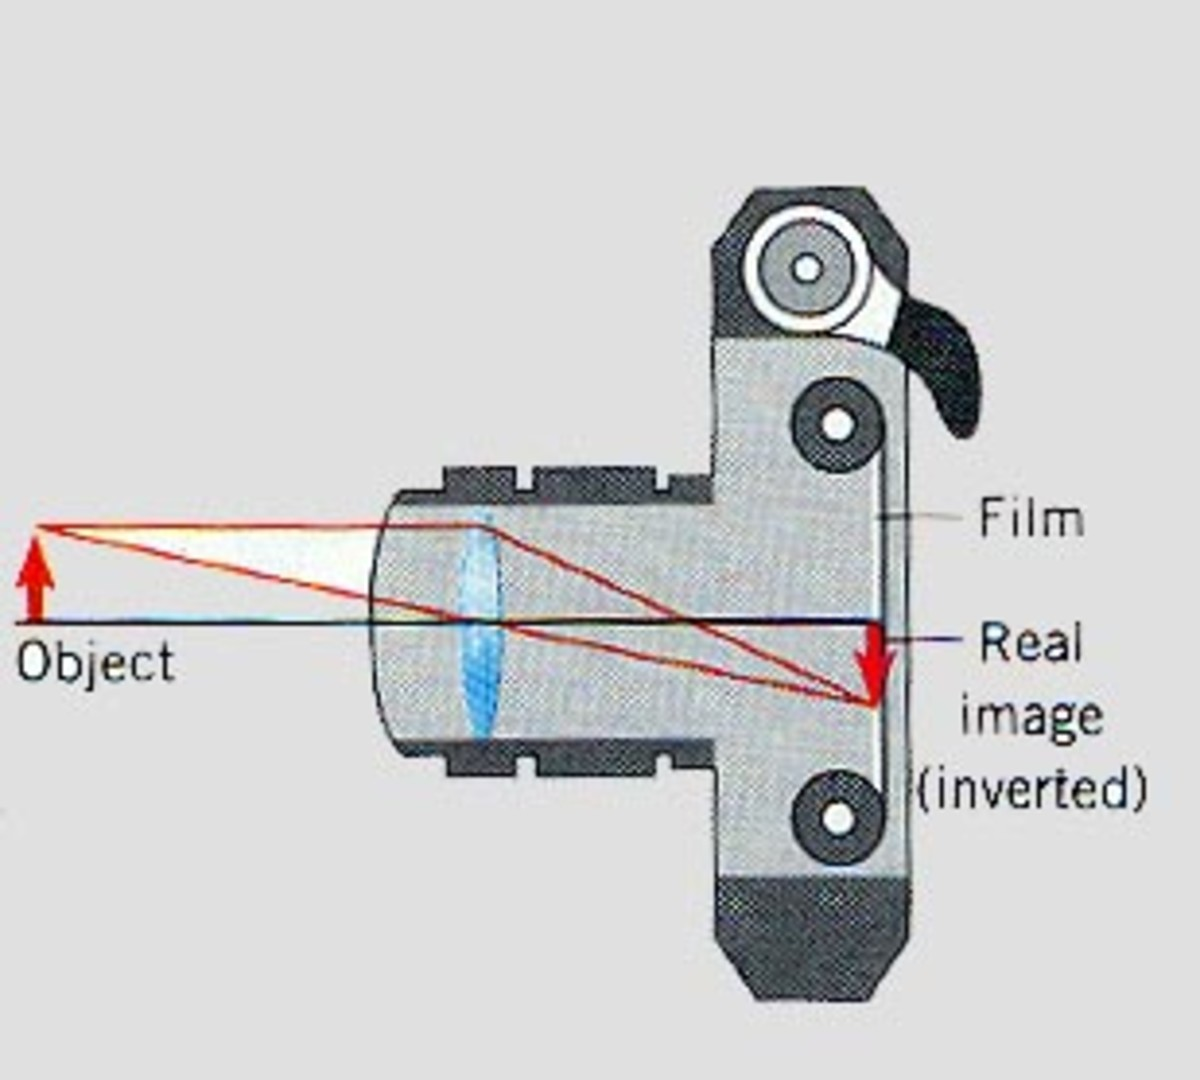 Diagram of how still film photography works